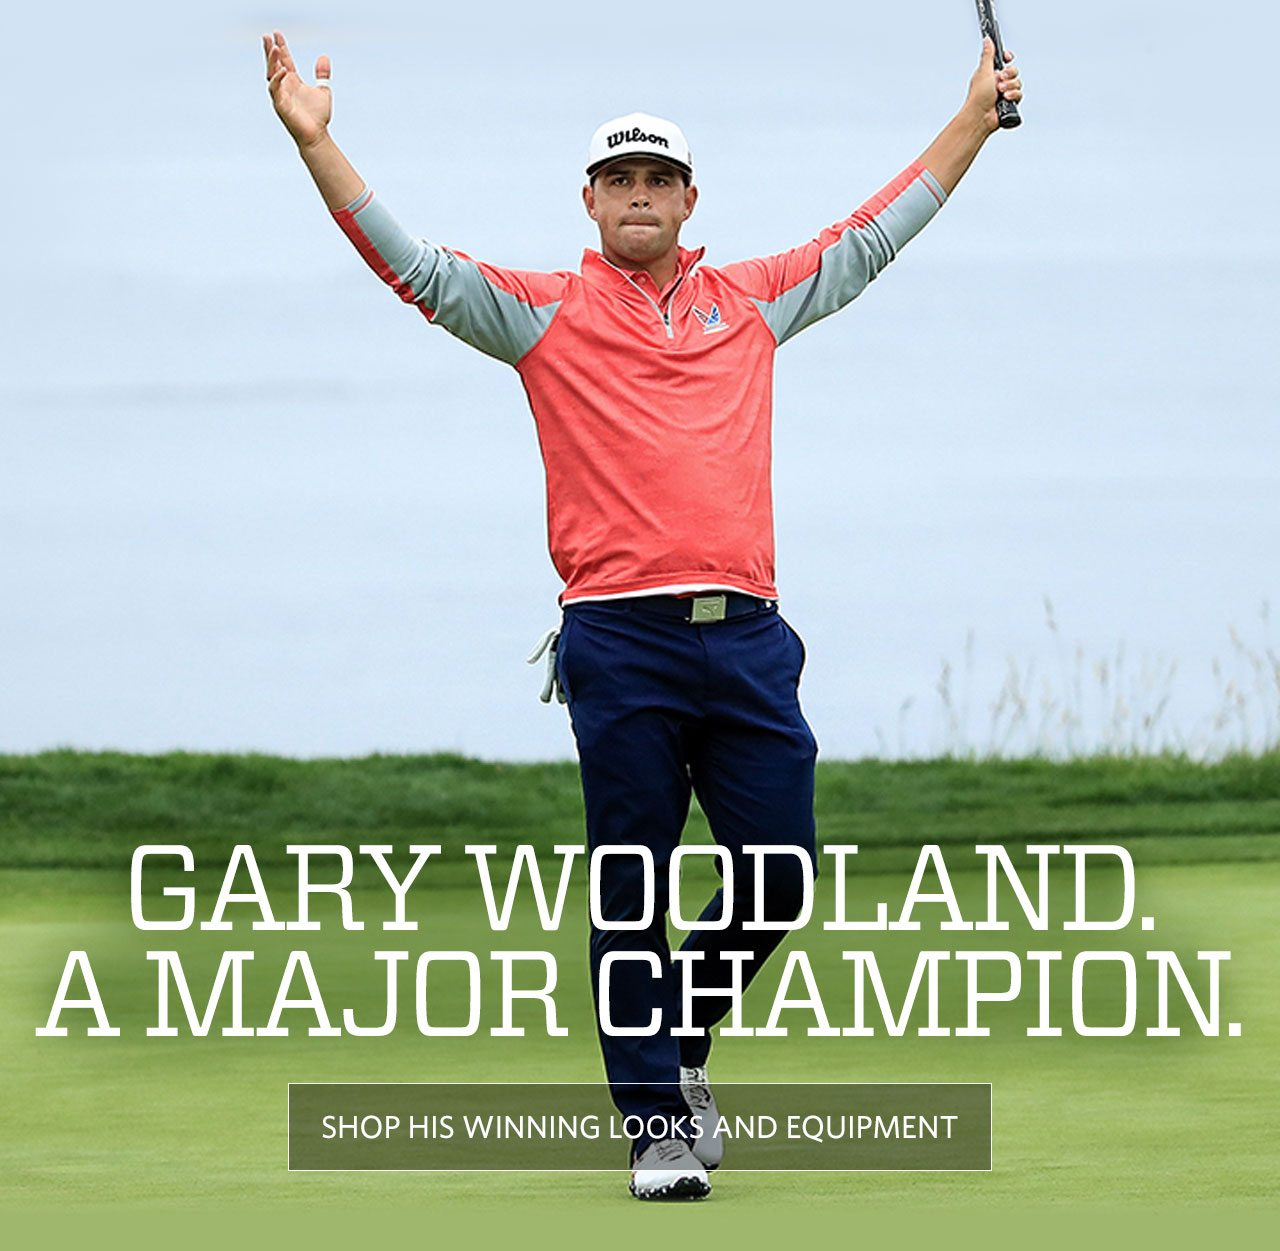 Congrats Tiger on another major championship